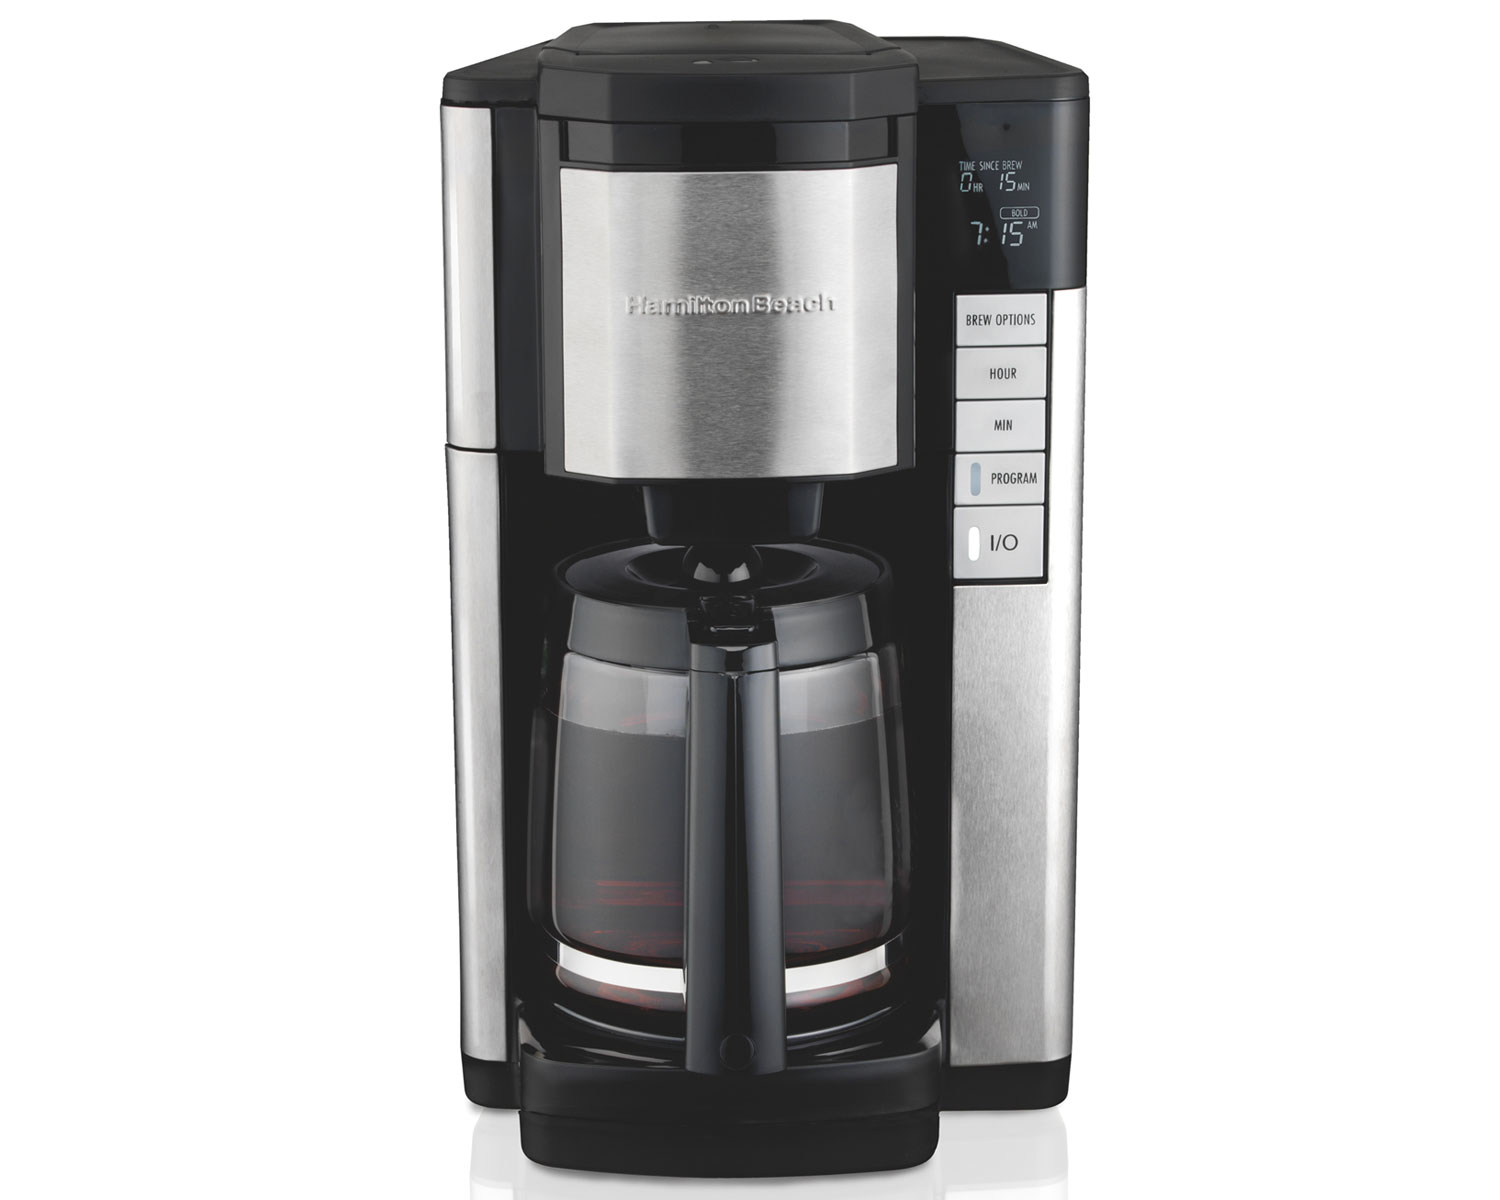 Programmable Easy Access Plus Coffee Maker (46381)